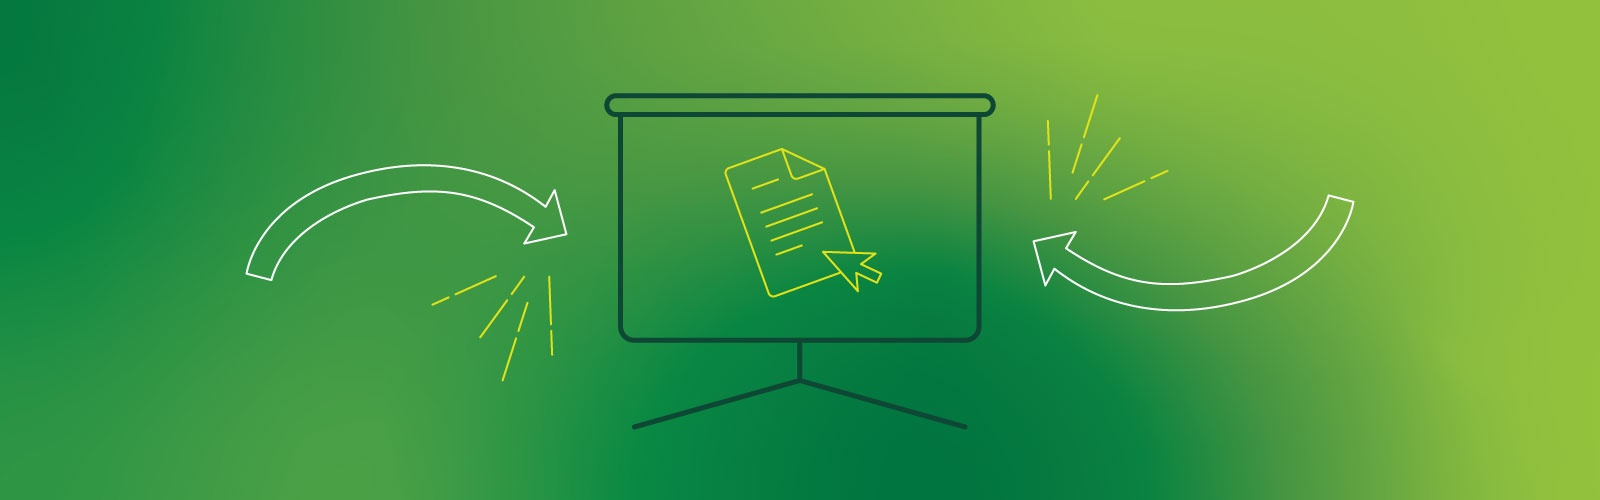 Lineart graphic design against a green background